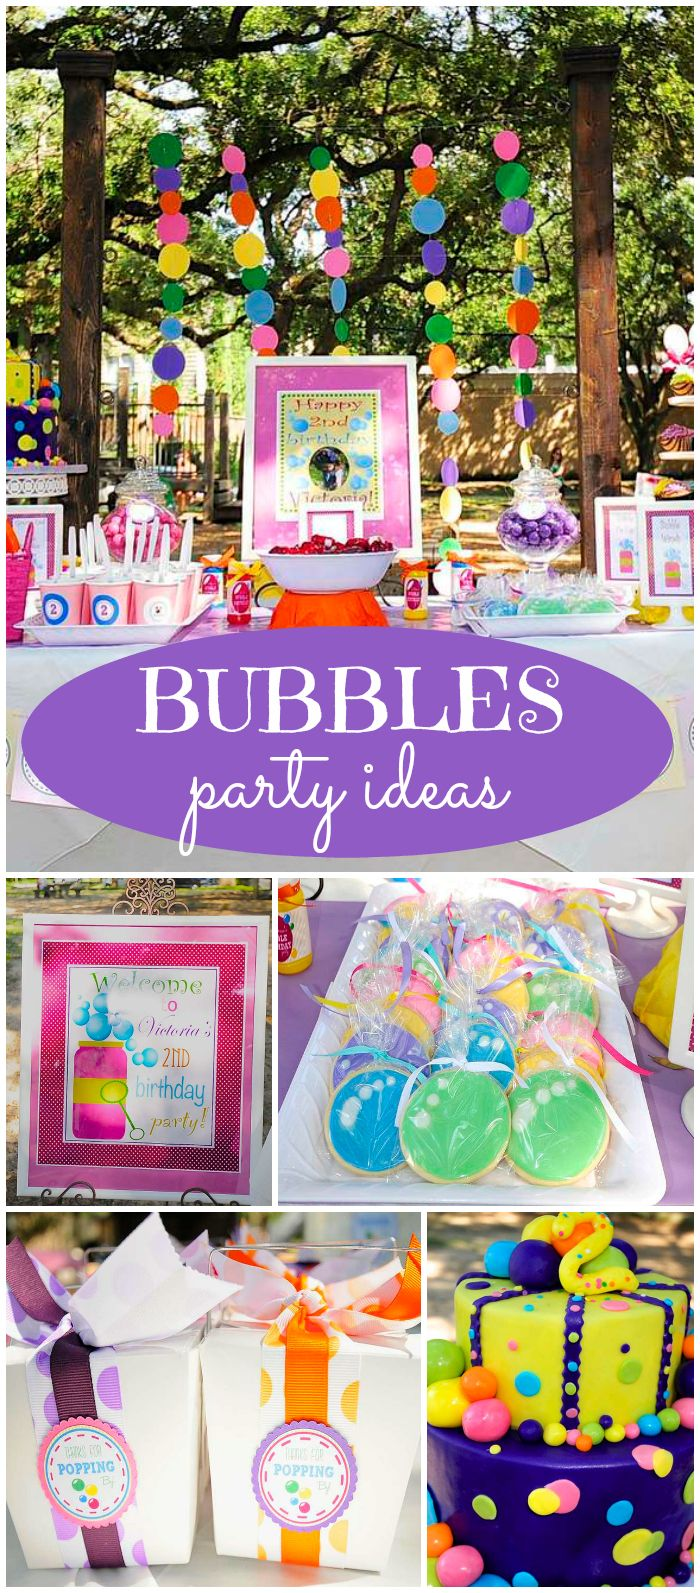 Kids party favors fun factory childrens parties entertainment rentals - A Bubble Party Is Such A Fun Theme For A Toddler S Birthday See More Party